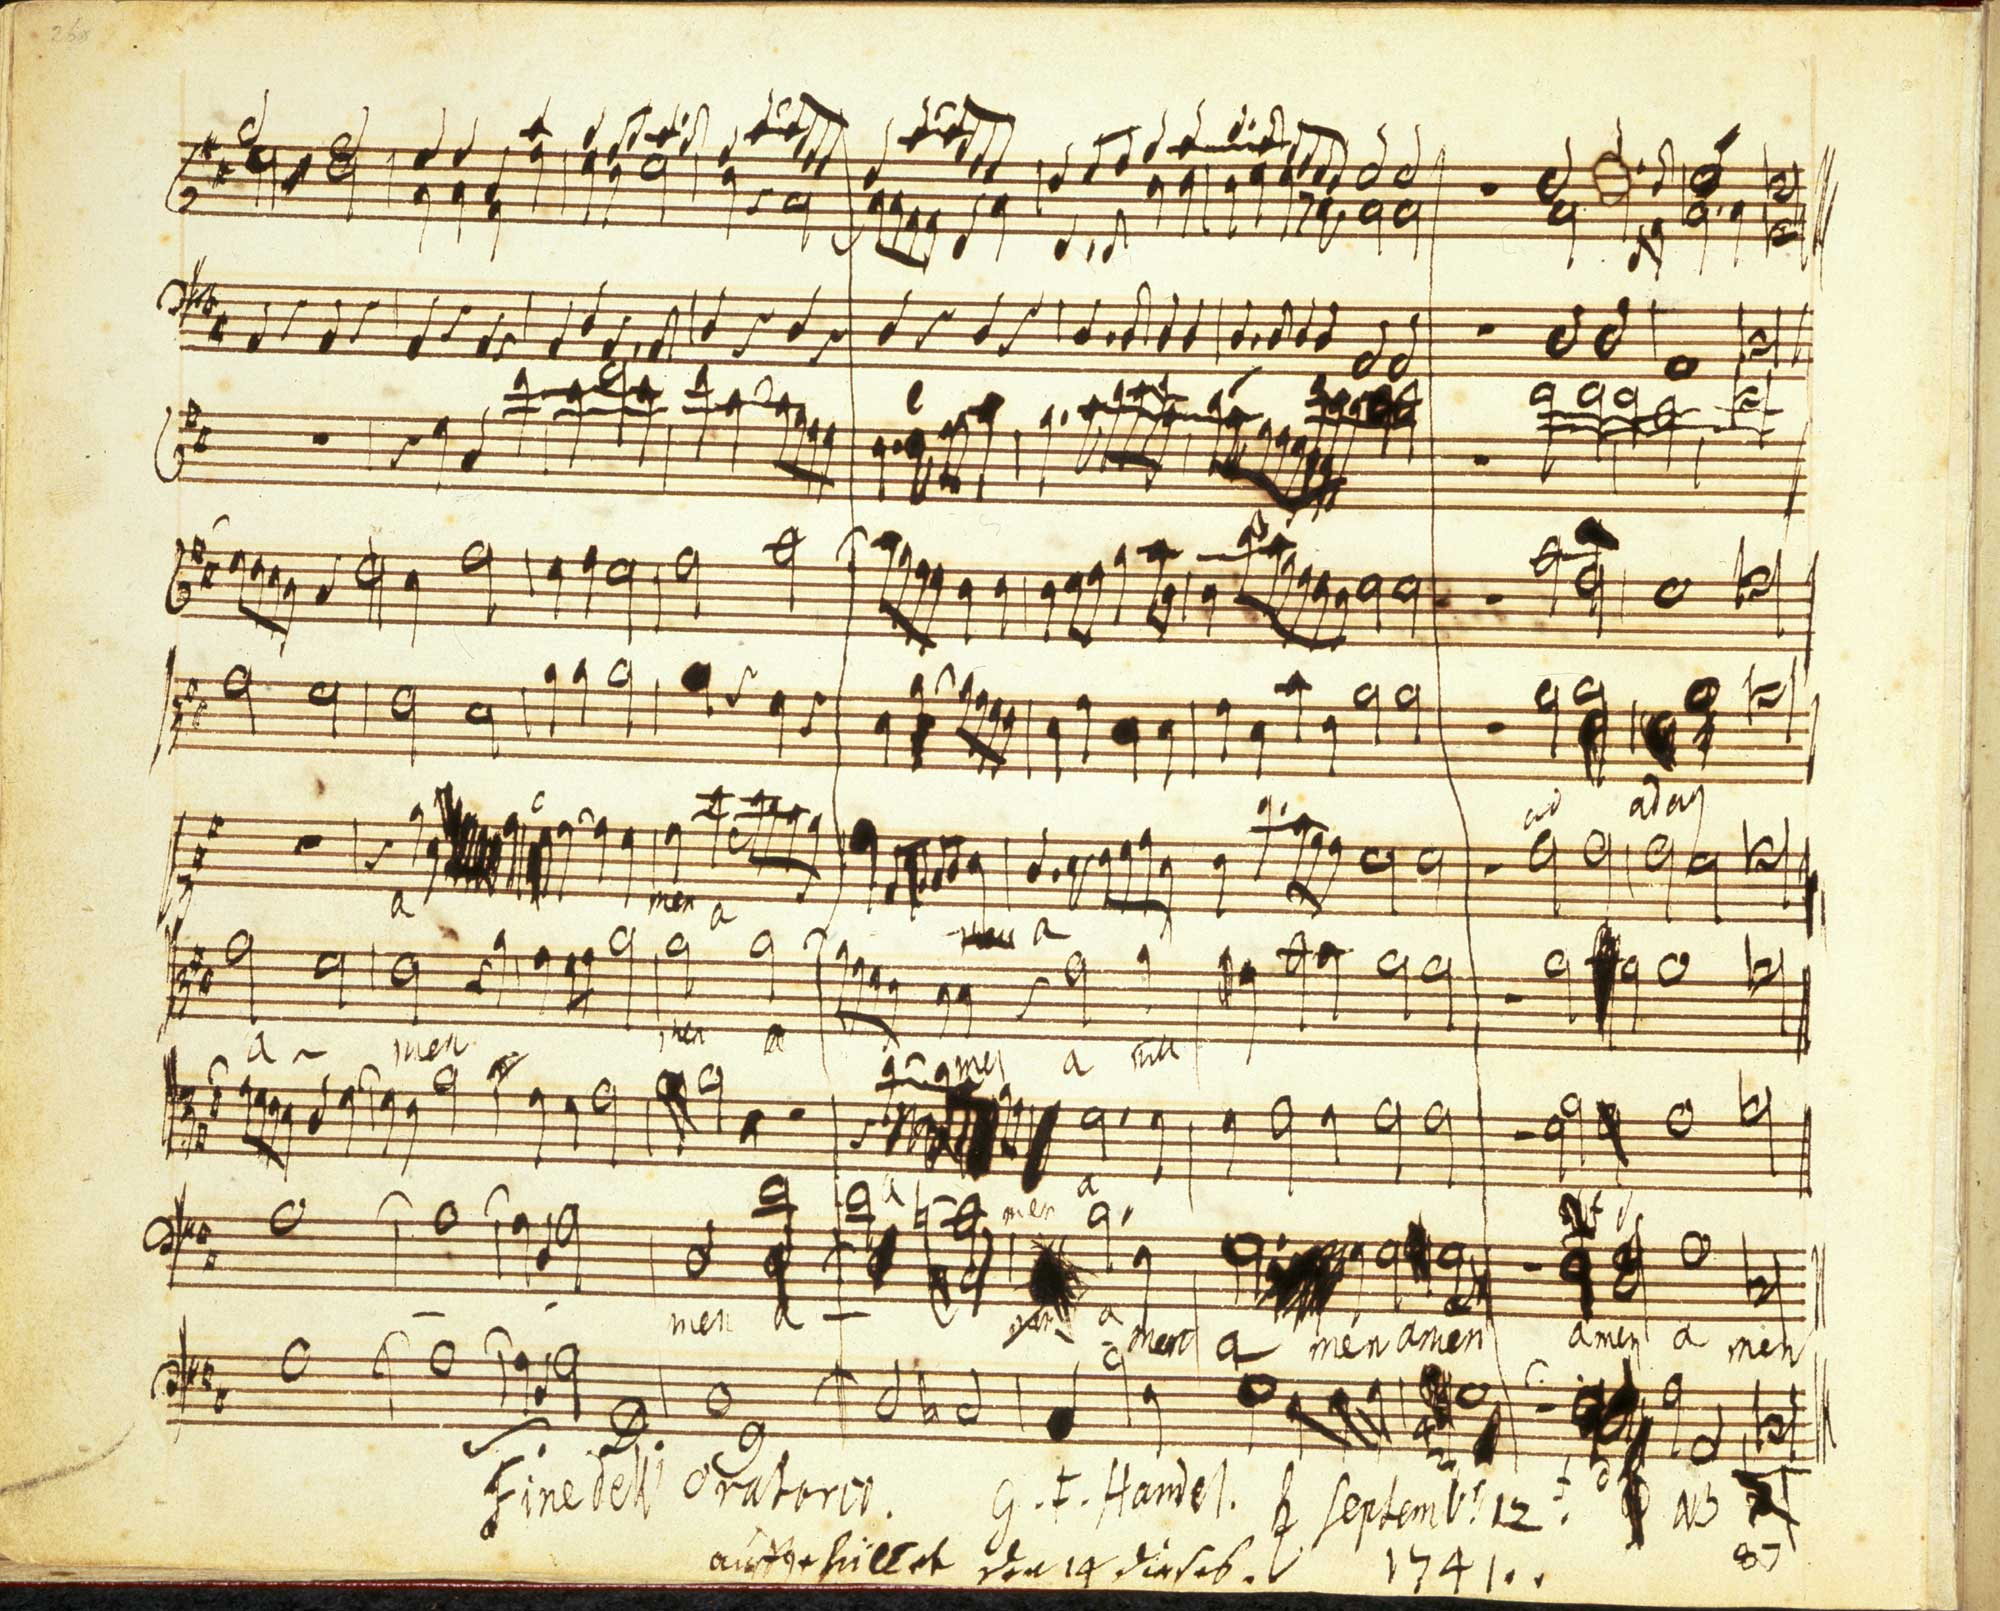 an analysis of the music by handel List of works by george frideric handel  a pasticcio opera containing music by handel and performed by the middlesex opera company.